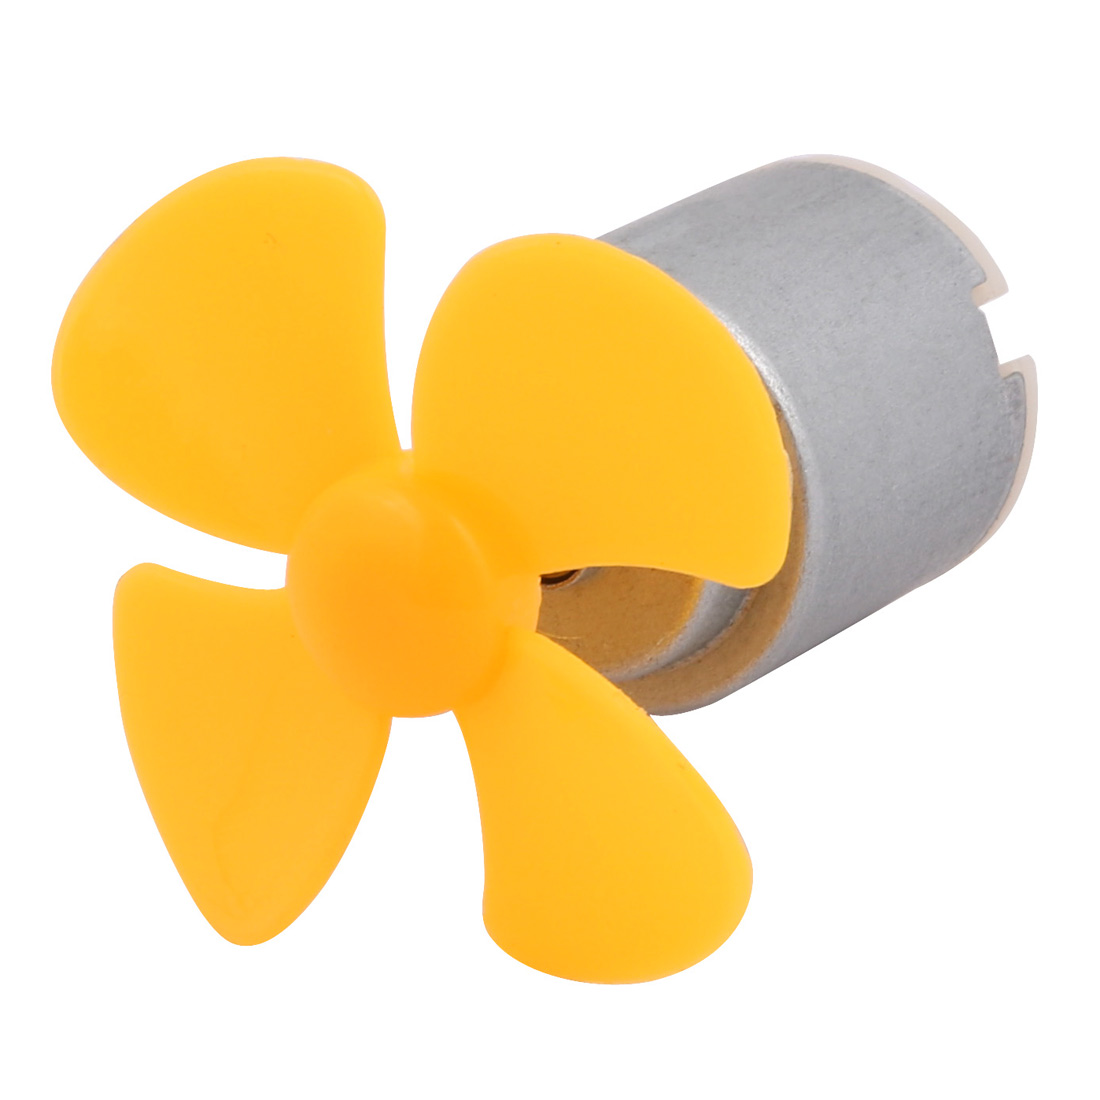 DC 3V 0.05A 12500RPM Strong Force Motor 4 Vanes 40mm Yellow Propeller for RC Aircraft